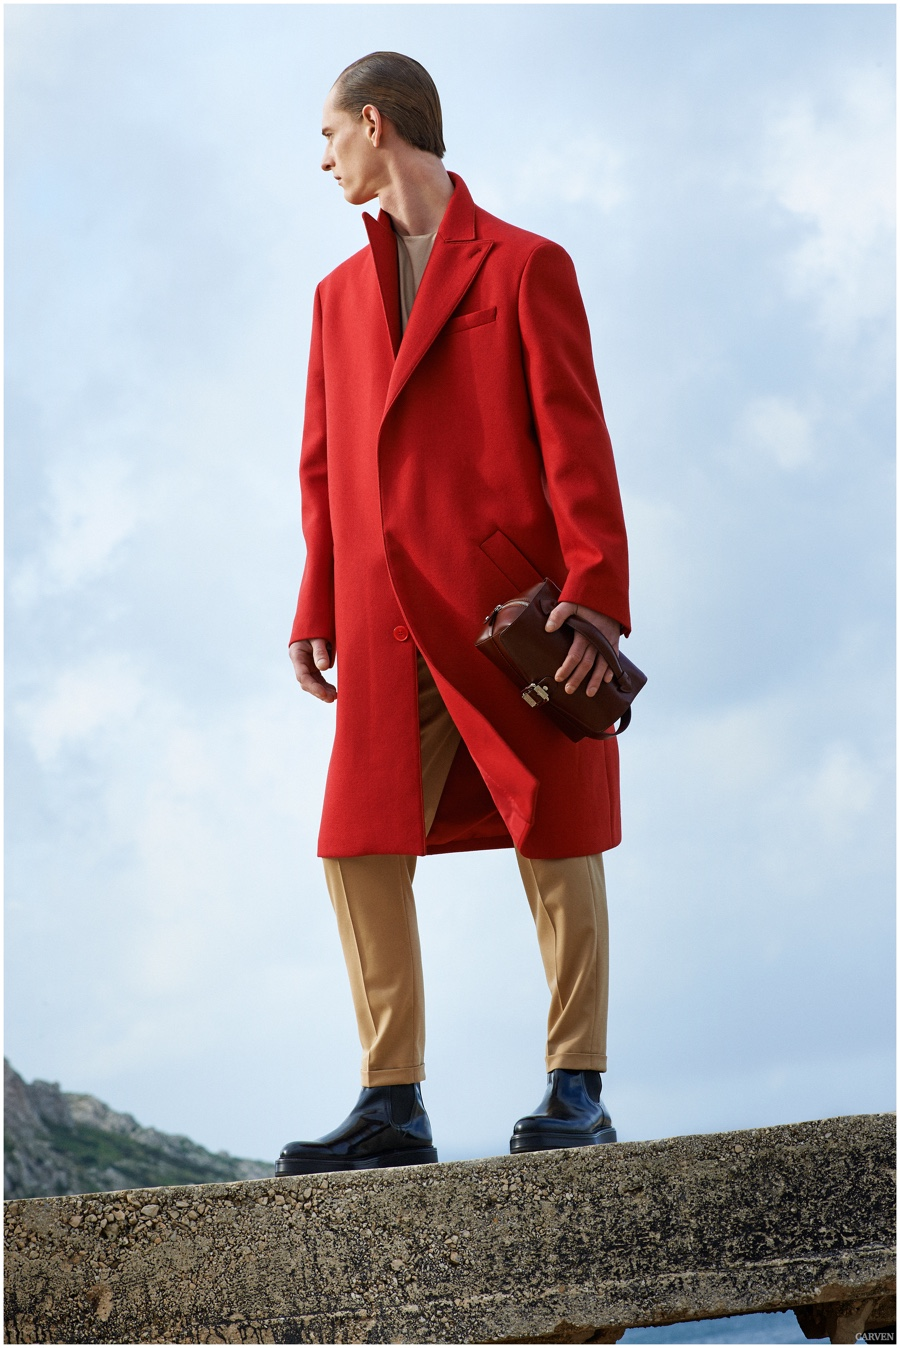 Carven Fall/Winter 2015 Menswear Collection Explores 80s Oversized Silhouettes